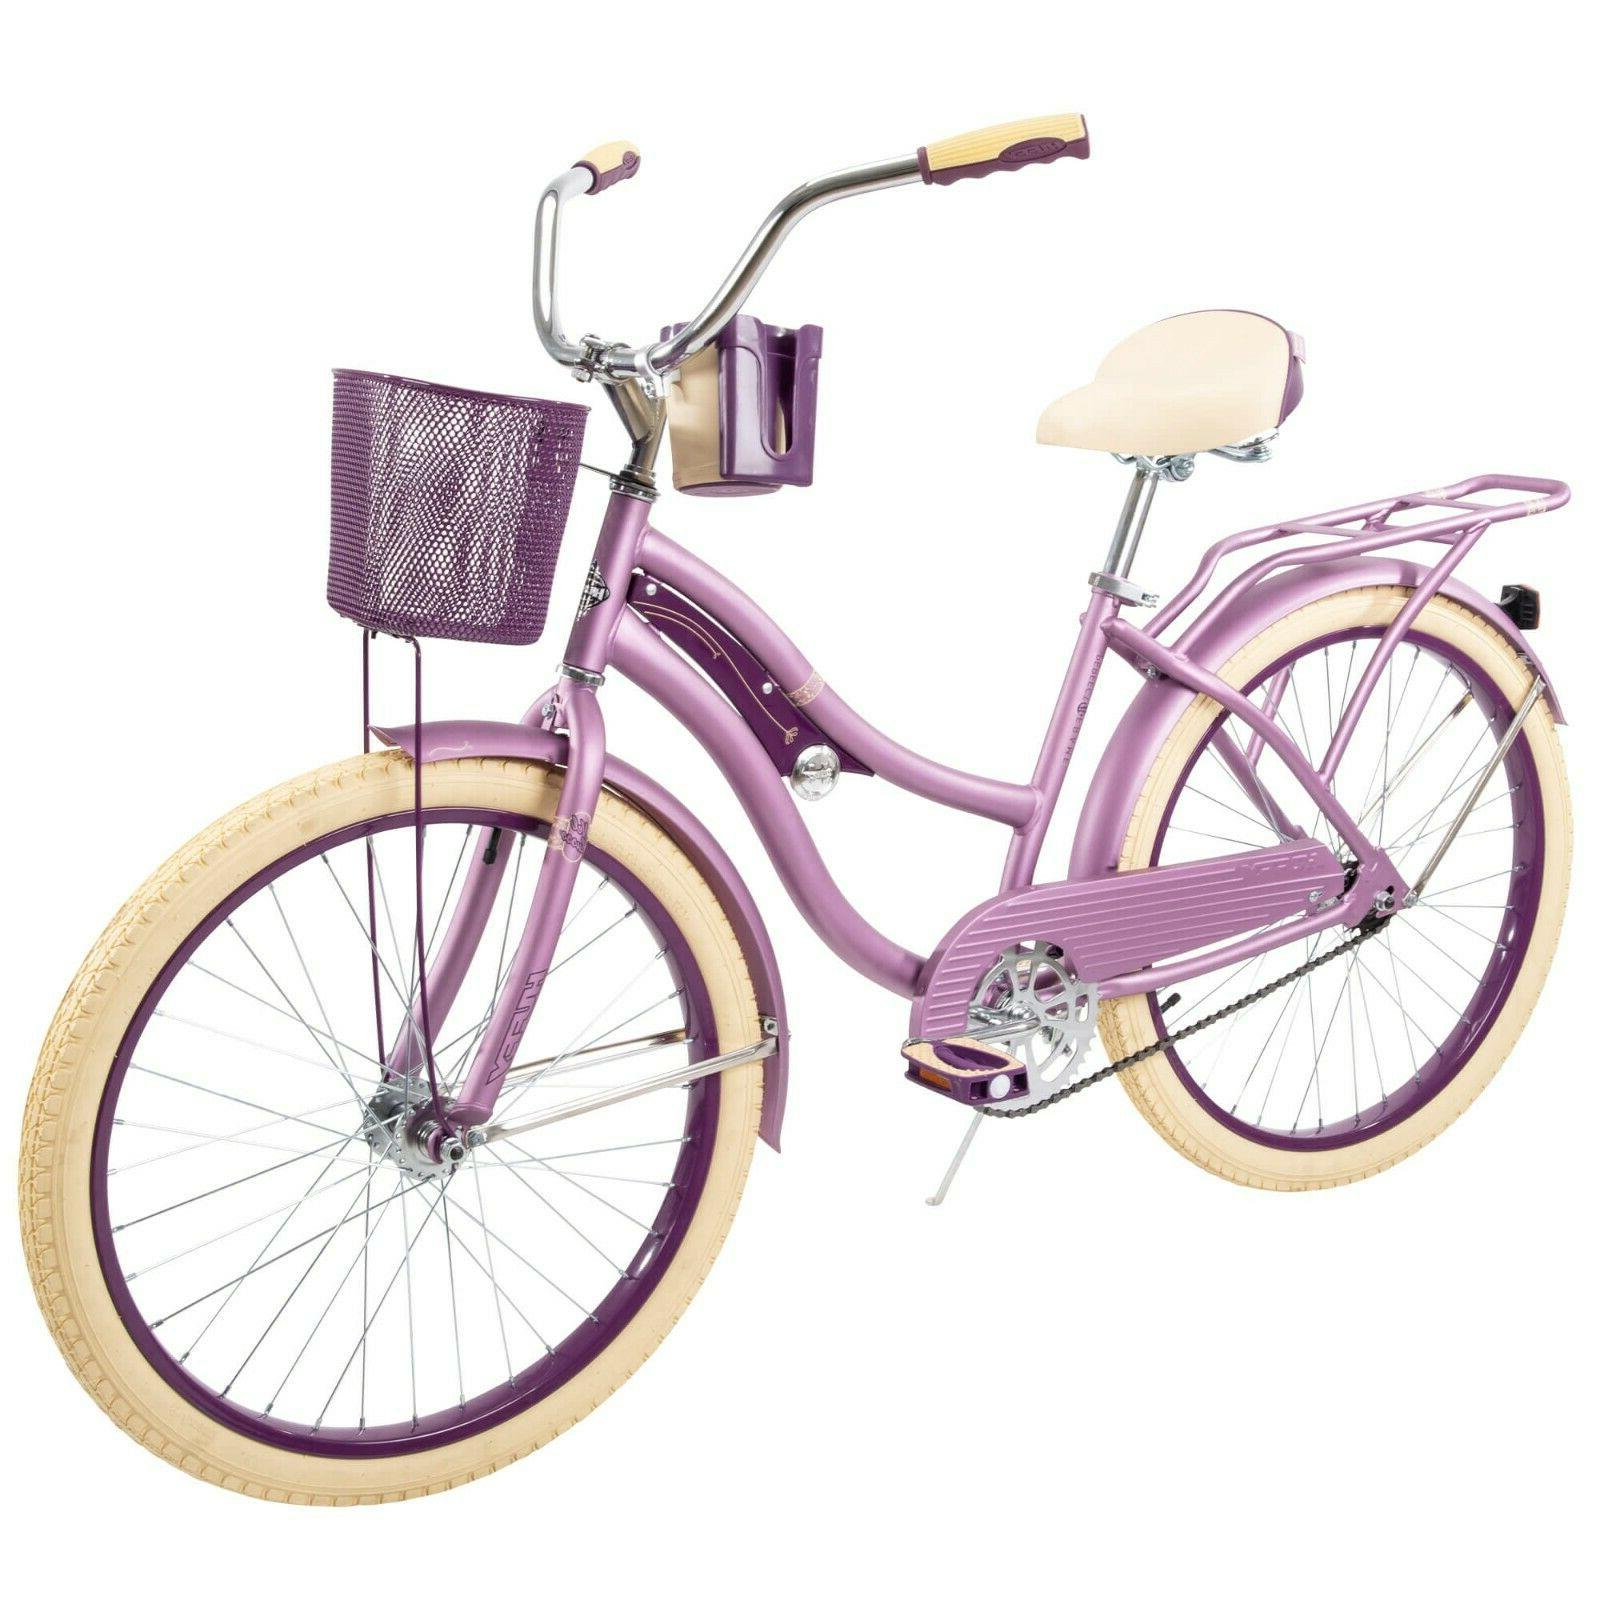 NEW Huffy Nel Lusso 24 inch Girls' Cruiser Bike Purple satin